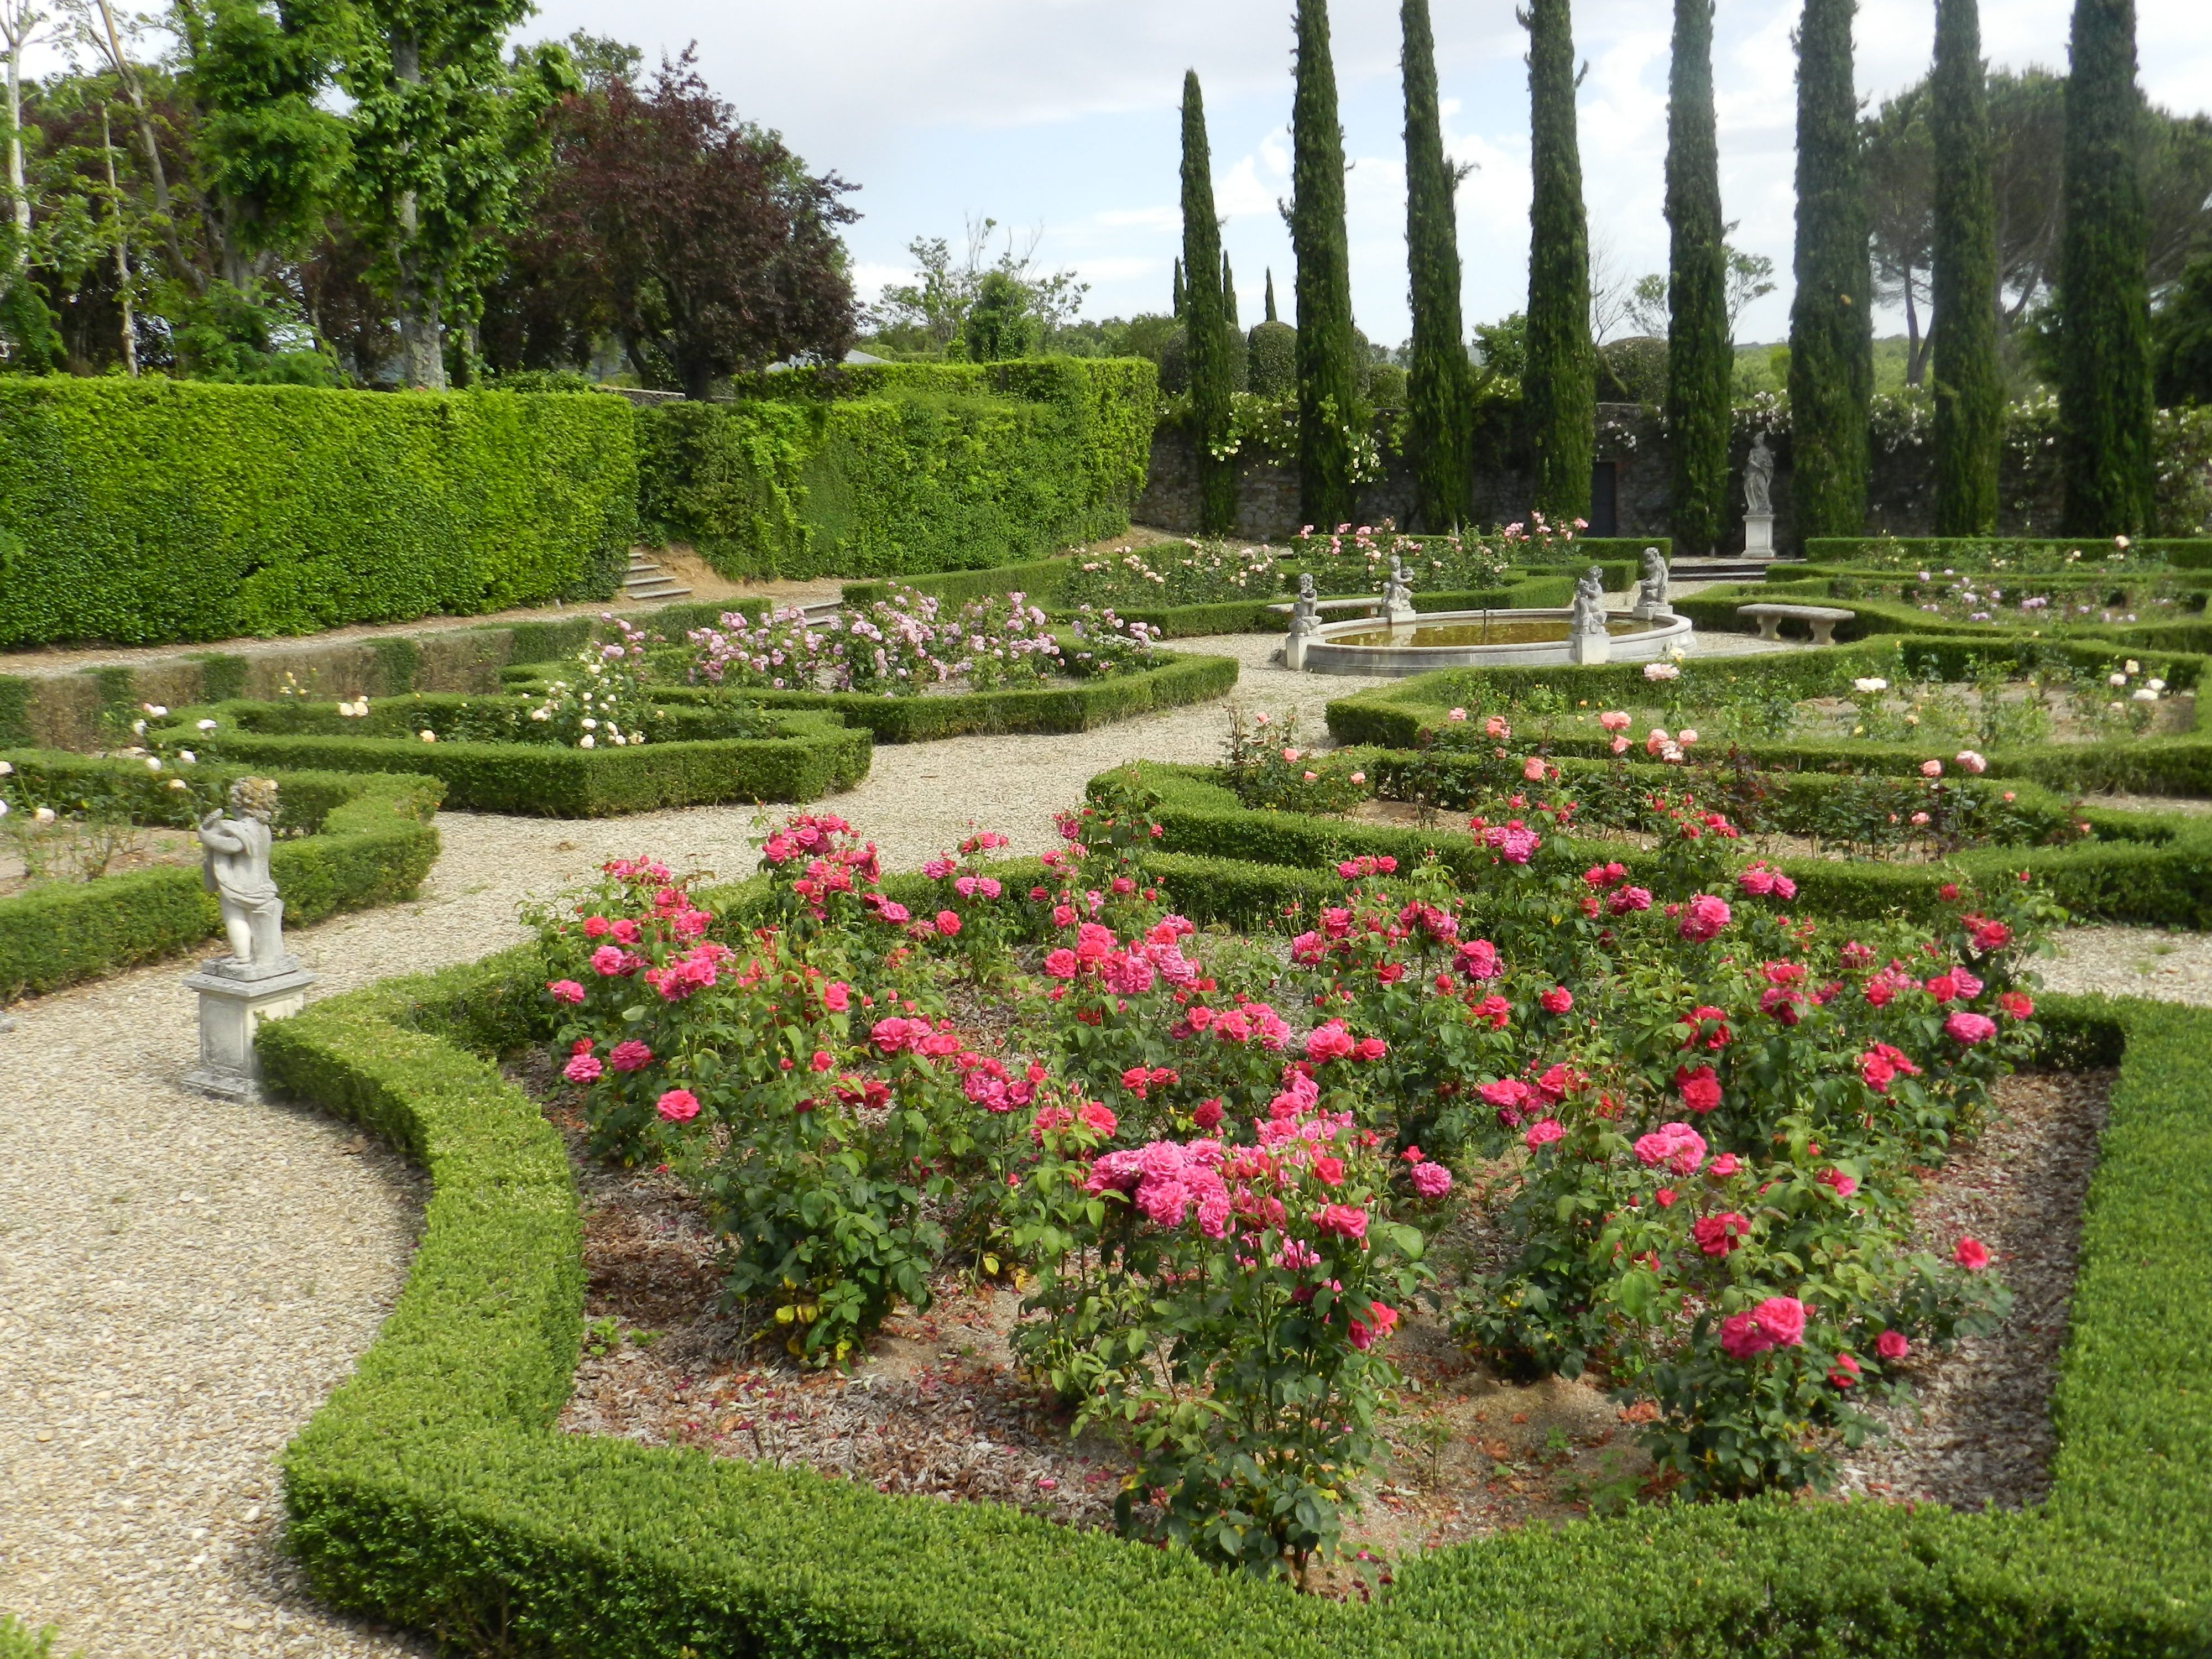 Roses in La Selva Villa Mansion's formal Italian garden